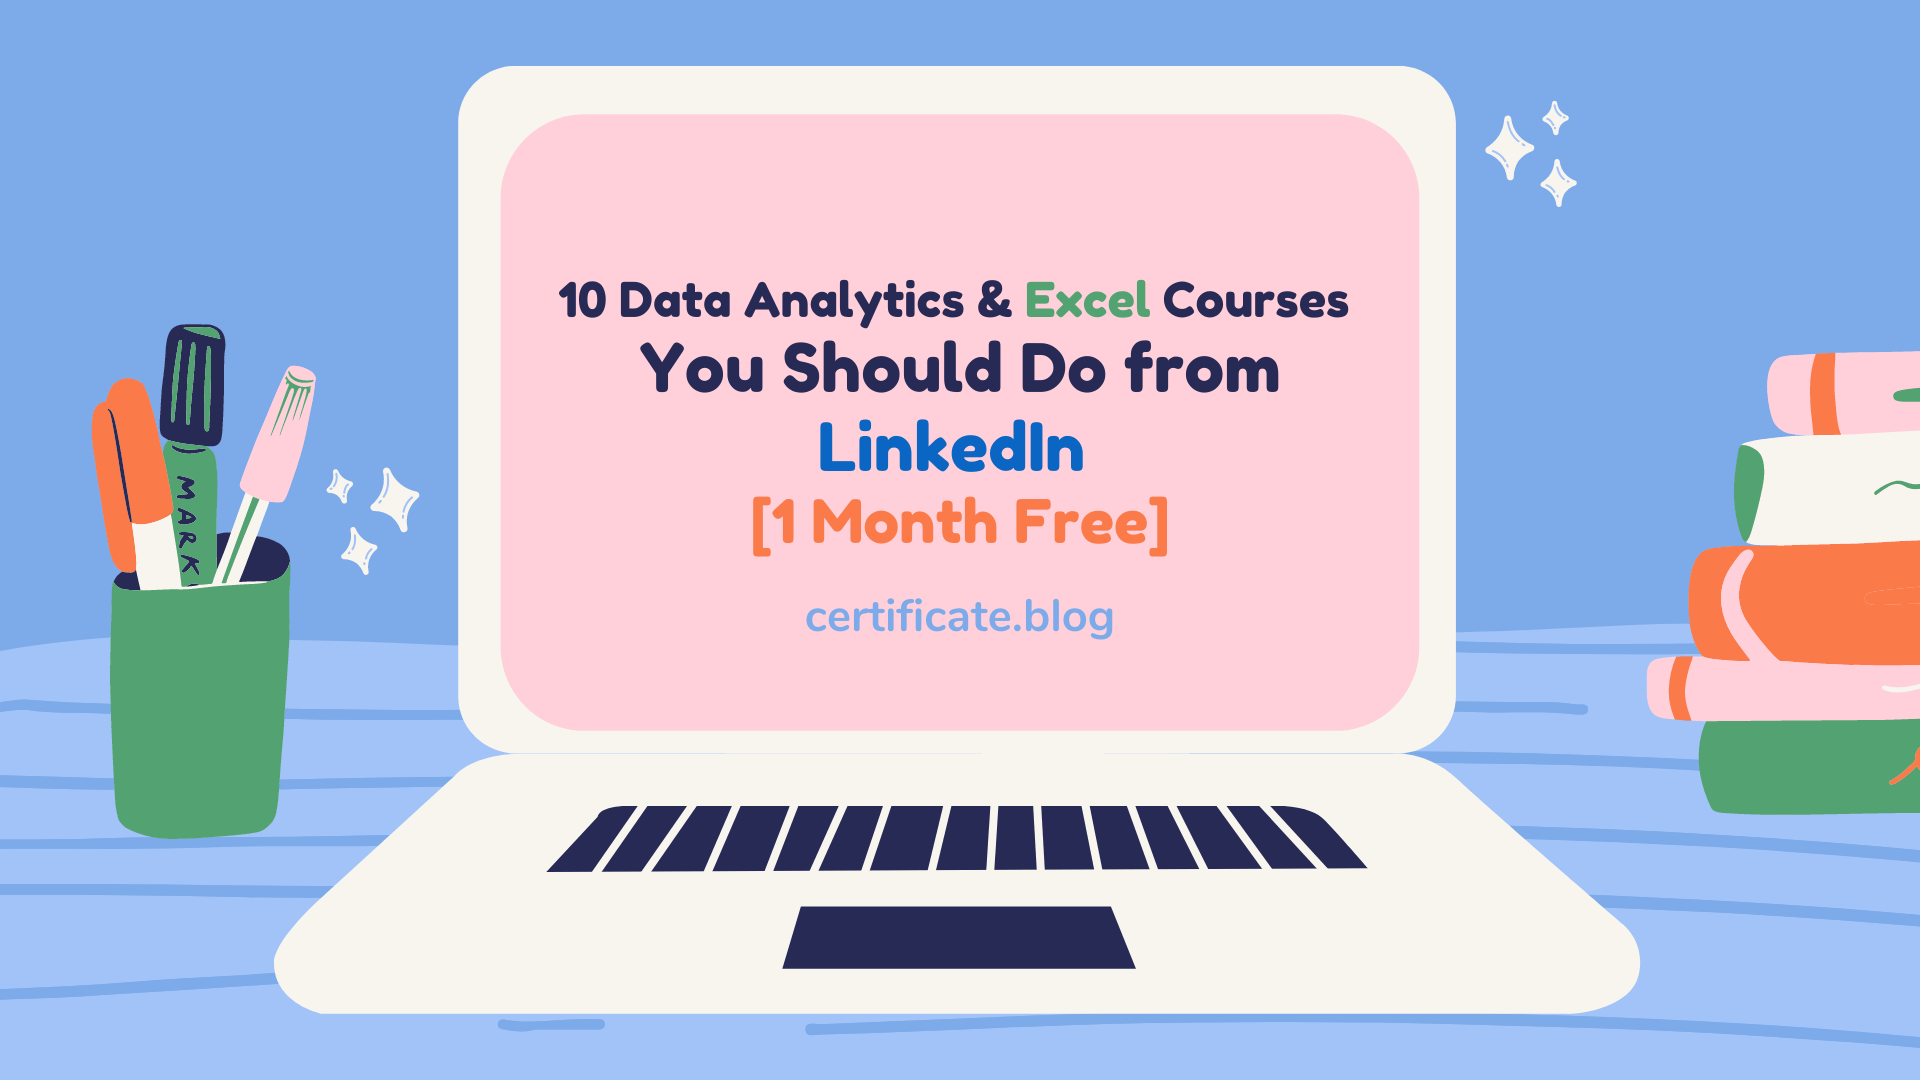 10 Data Analytics & Excel Courses You Should Do From LinkedIn [1 Month Free]